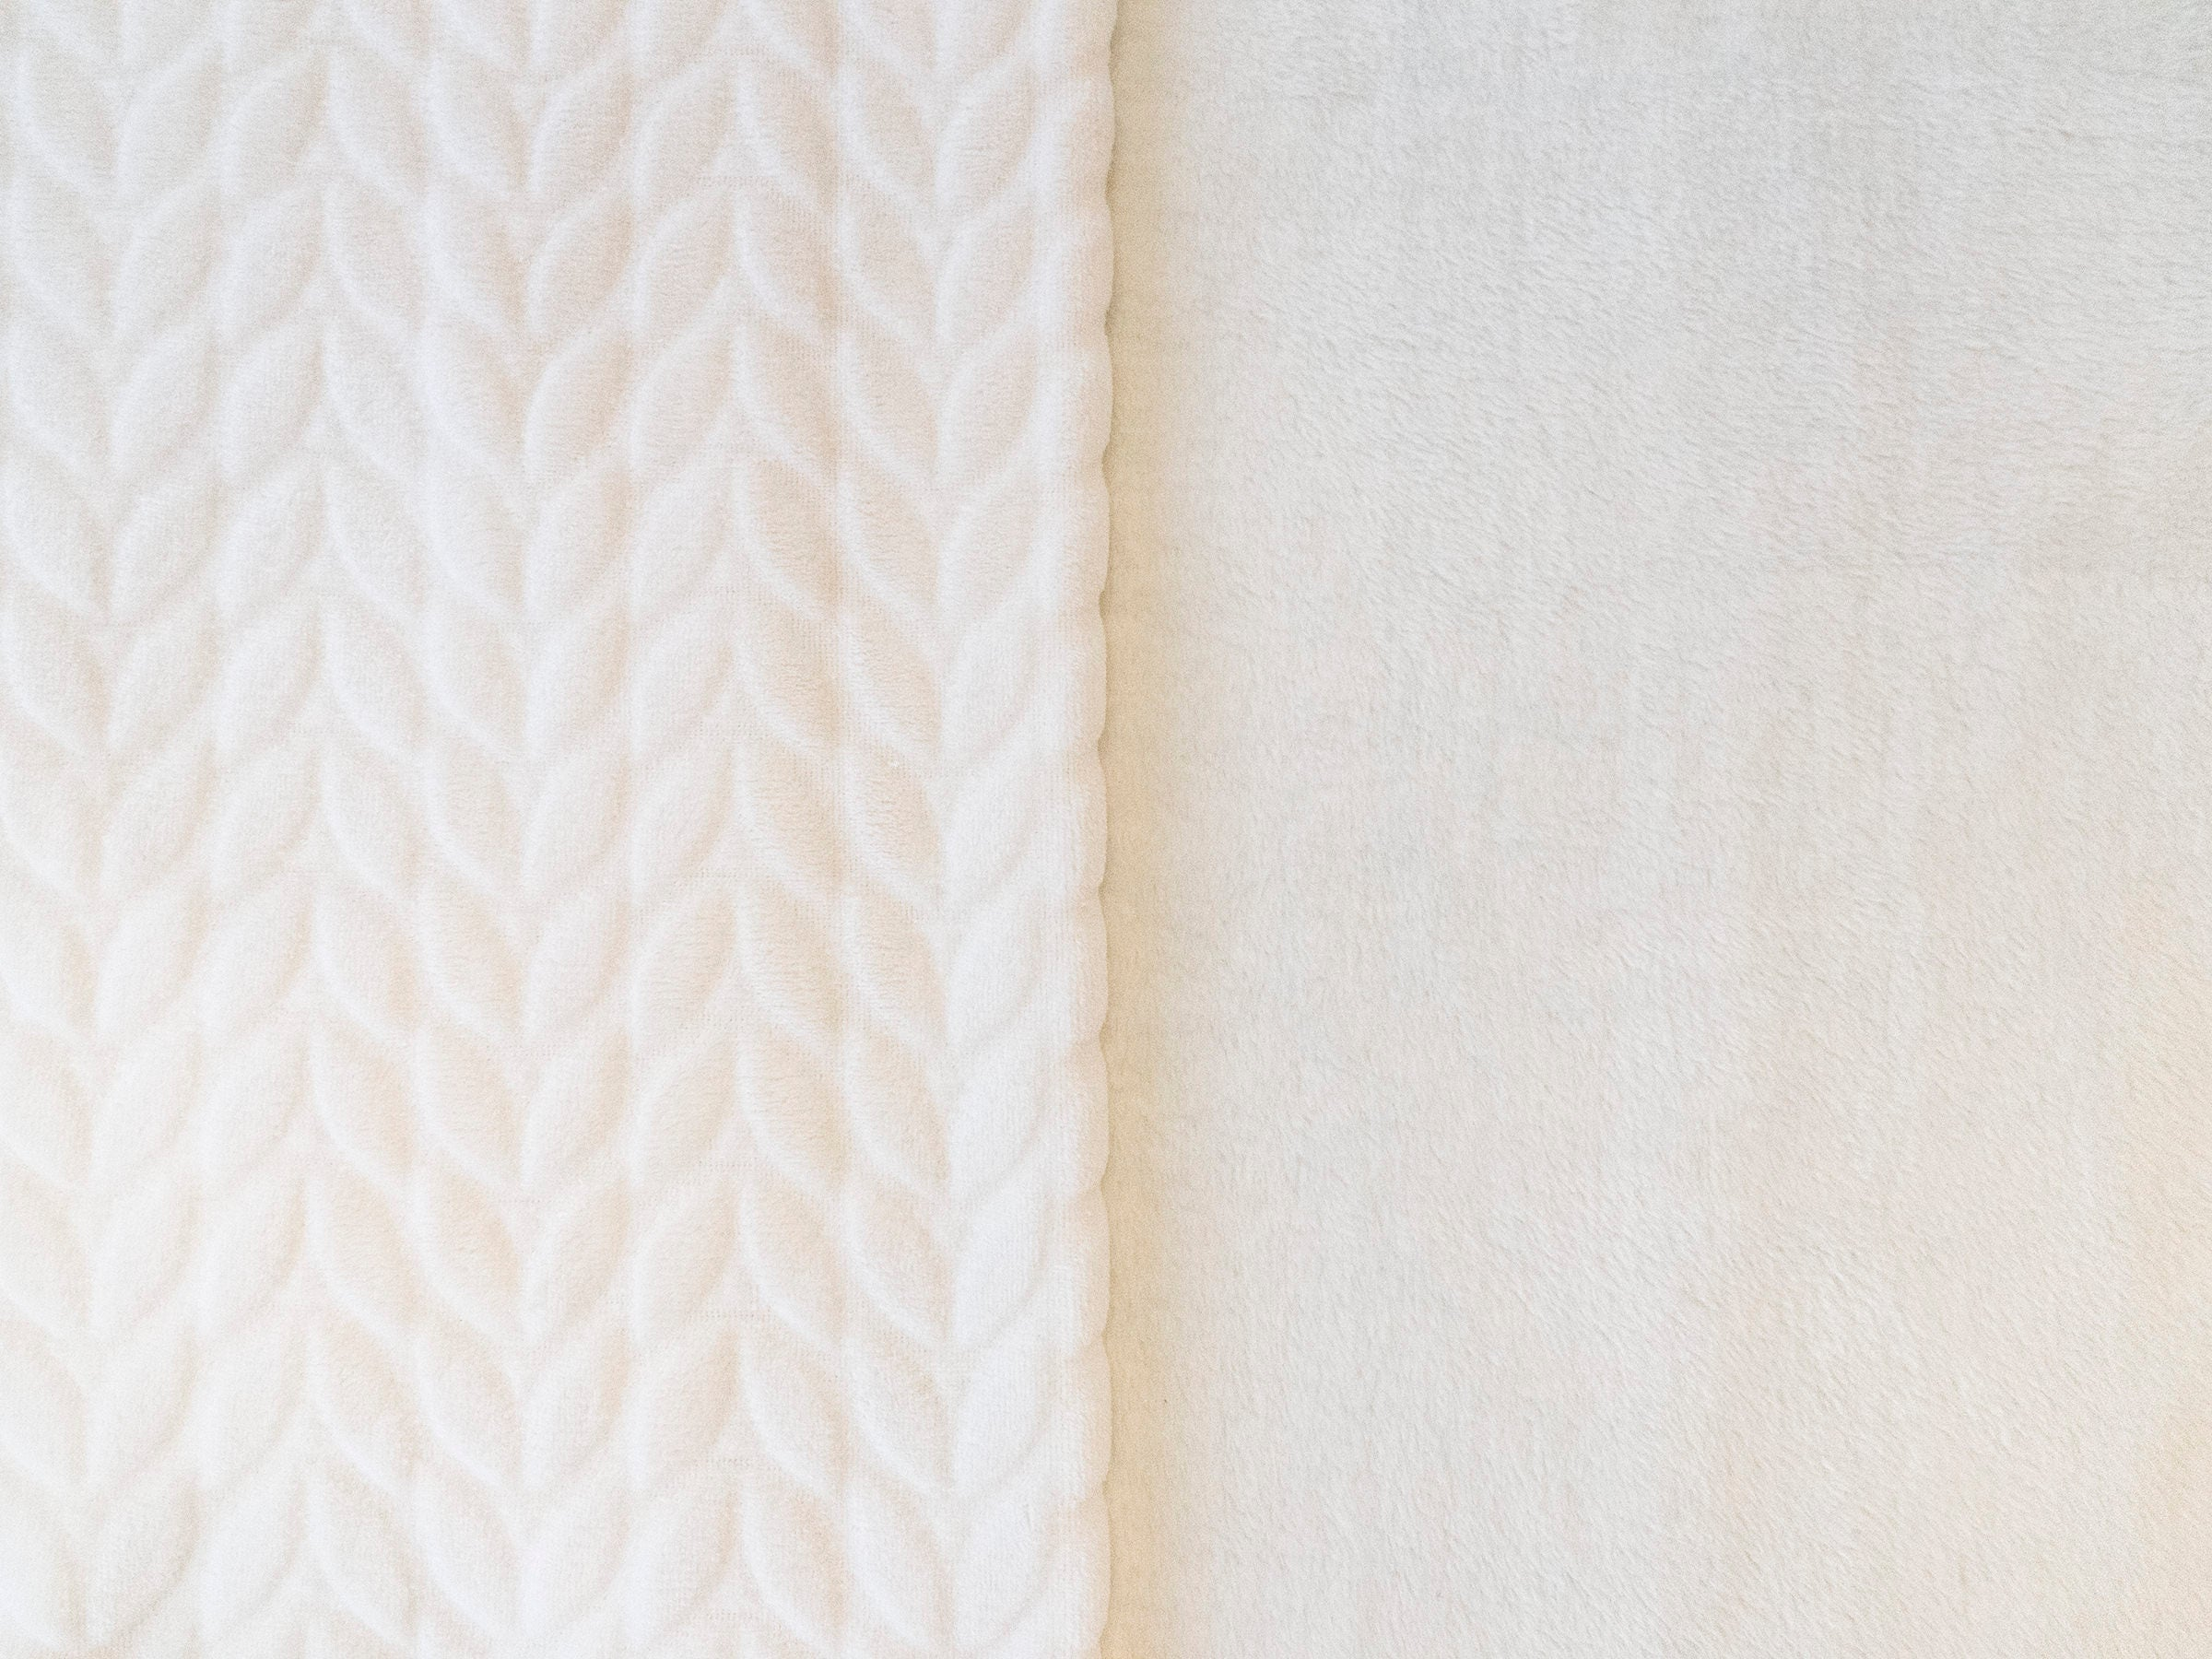 Stitch & Sparkle 100% Polyester Squiggly Minky  Fleece, White, Blanket Fabric, Apparel Fabric, Nurcery Fabric, 60'', 245Gsm